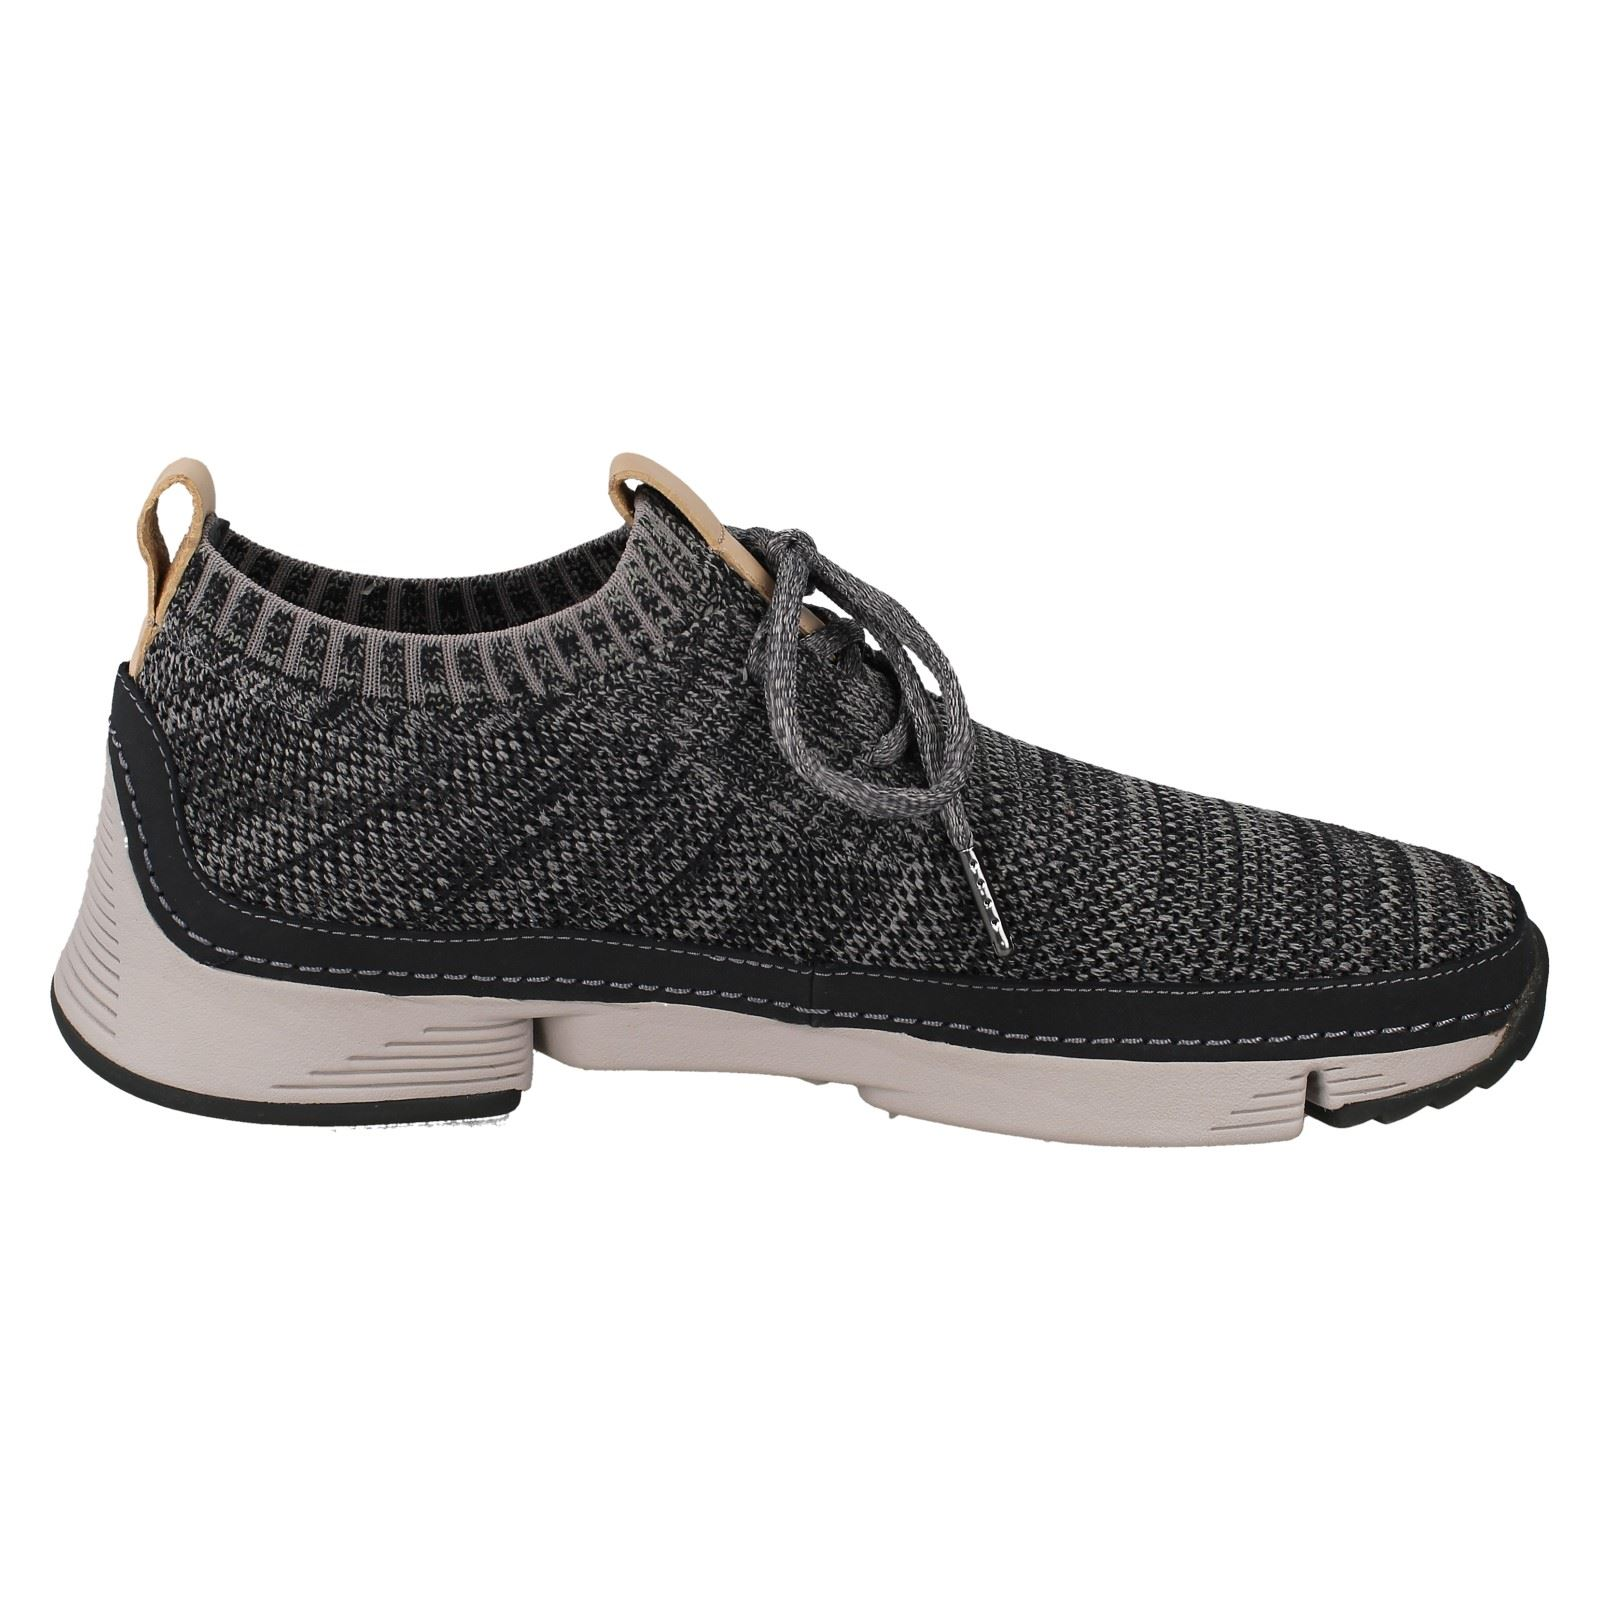 Mens Clarks Casual Lace Up Sports Sports Sports Shoes Tri Native 9d9a12